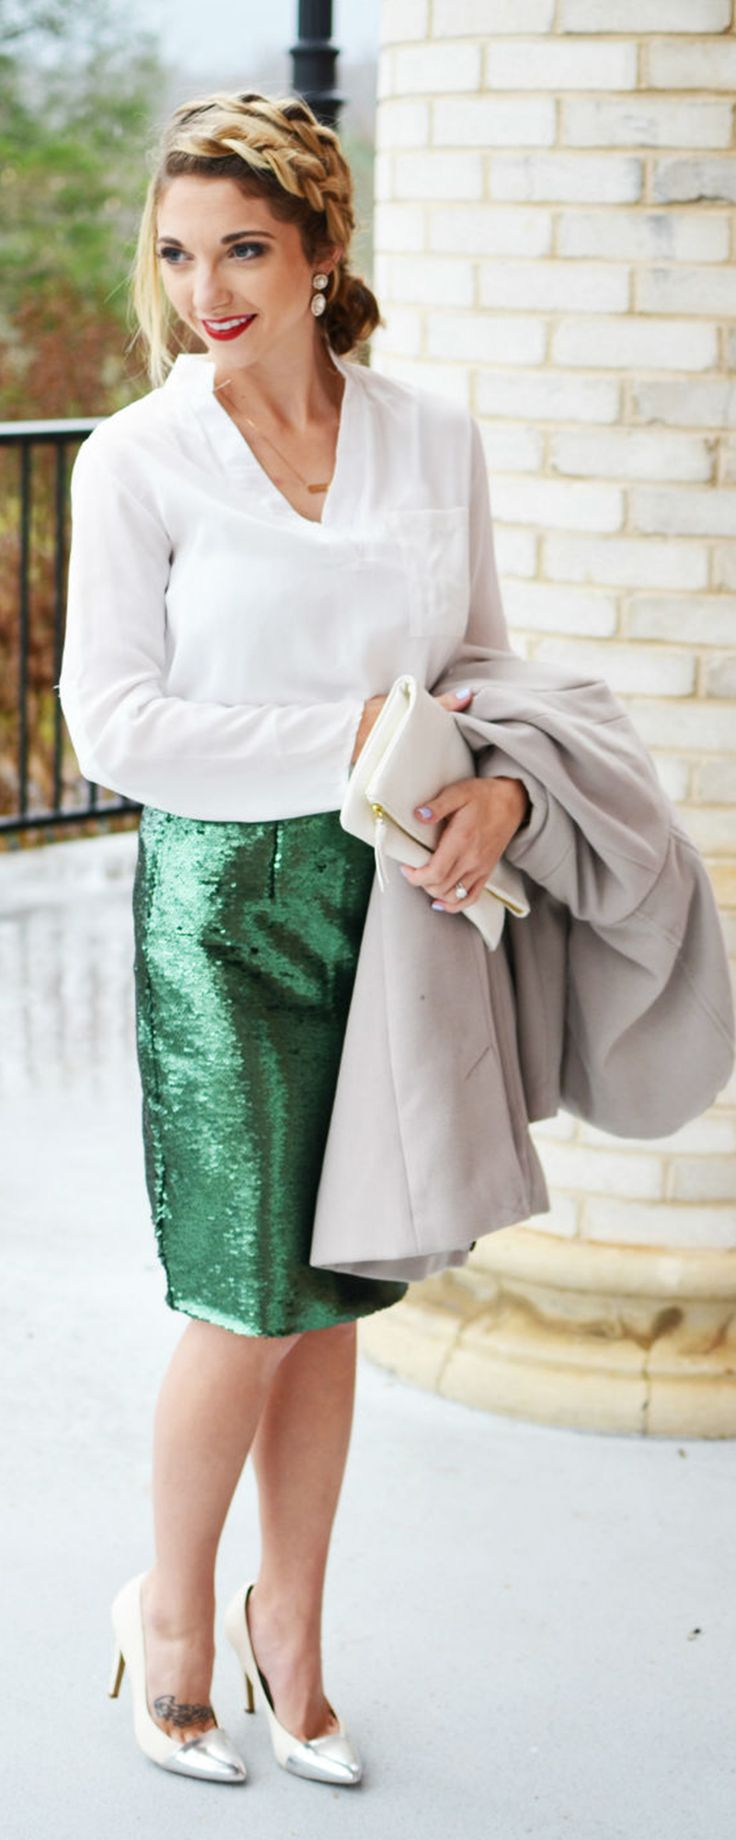 Holiday Office Party: white blouse green sequin skirt by Shein partywear find more women fashion on www.shein.com